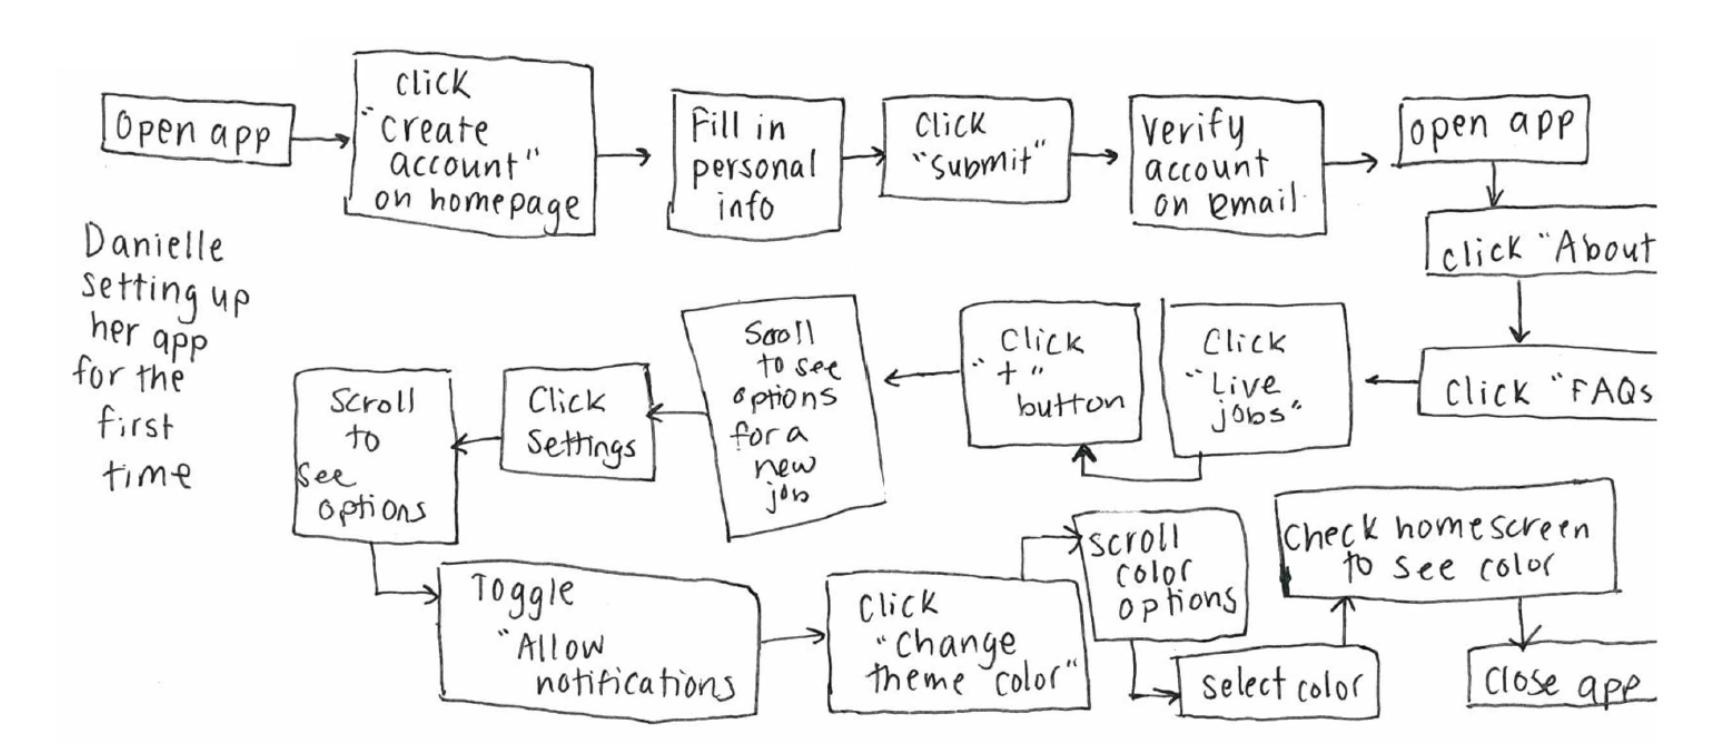 User flow for setting up the app for the first time